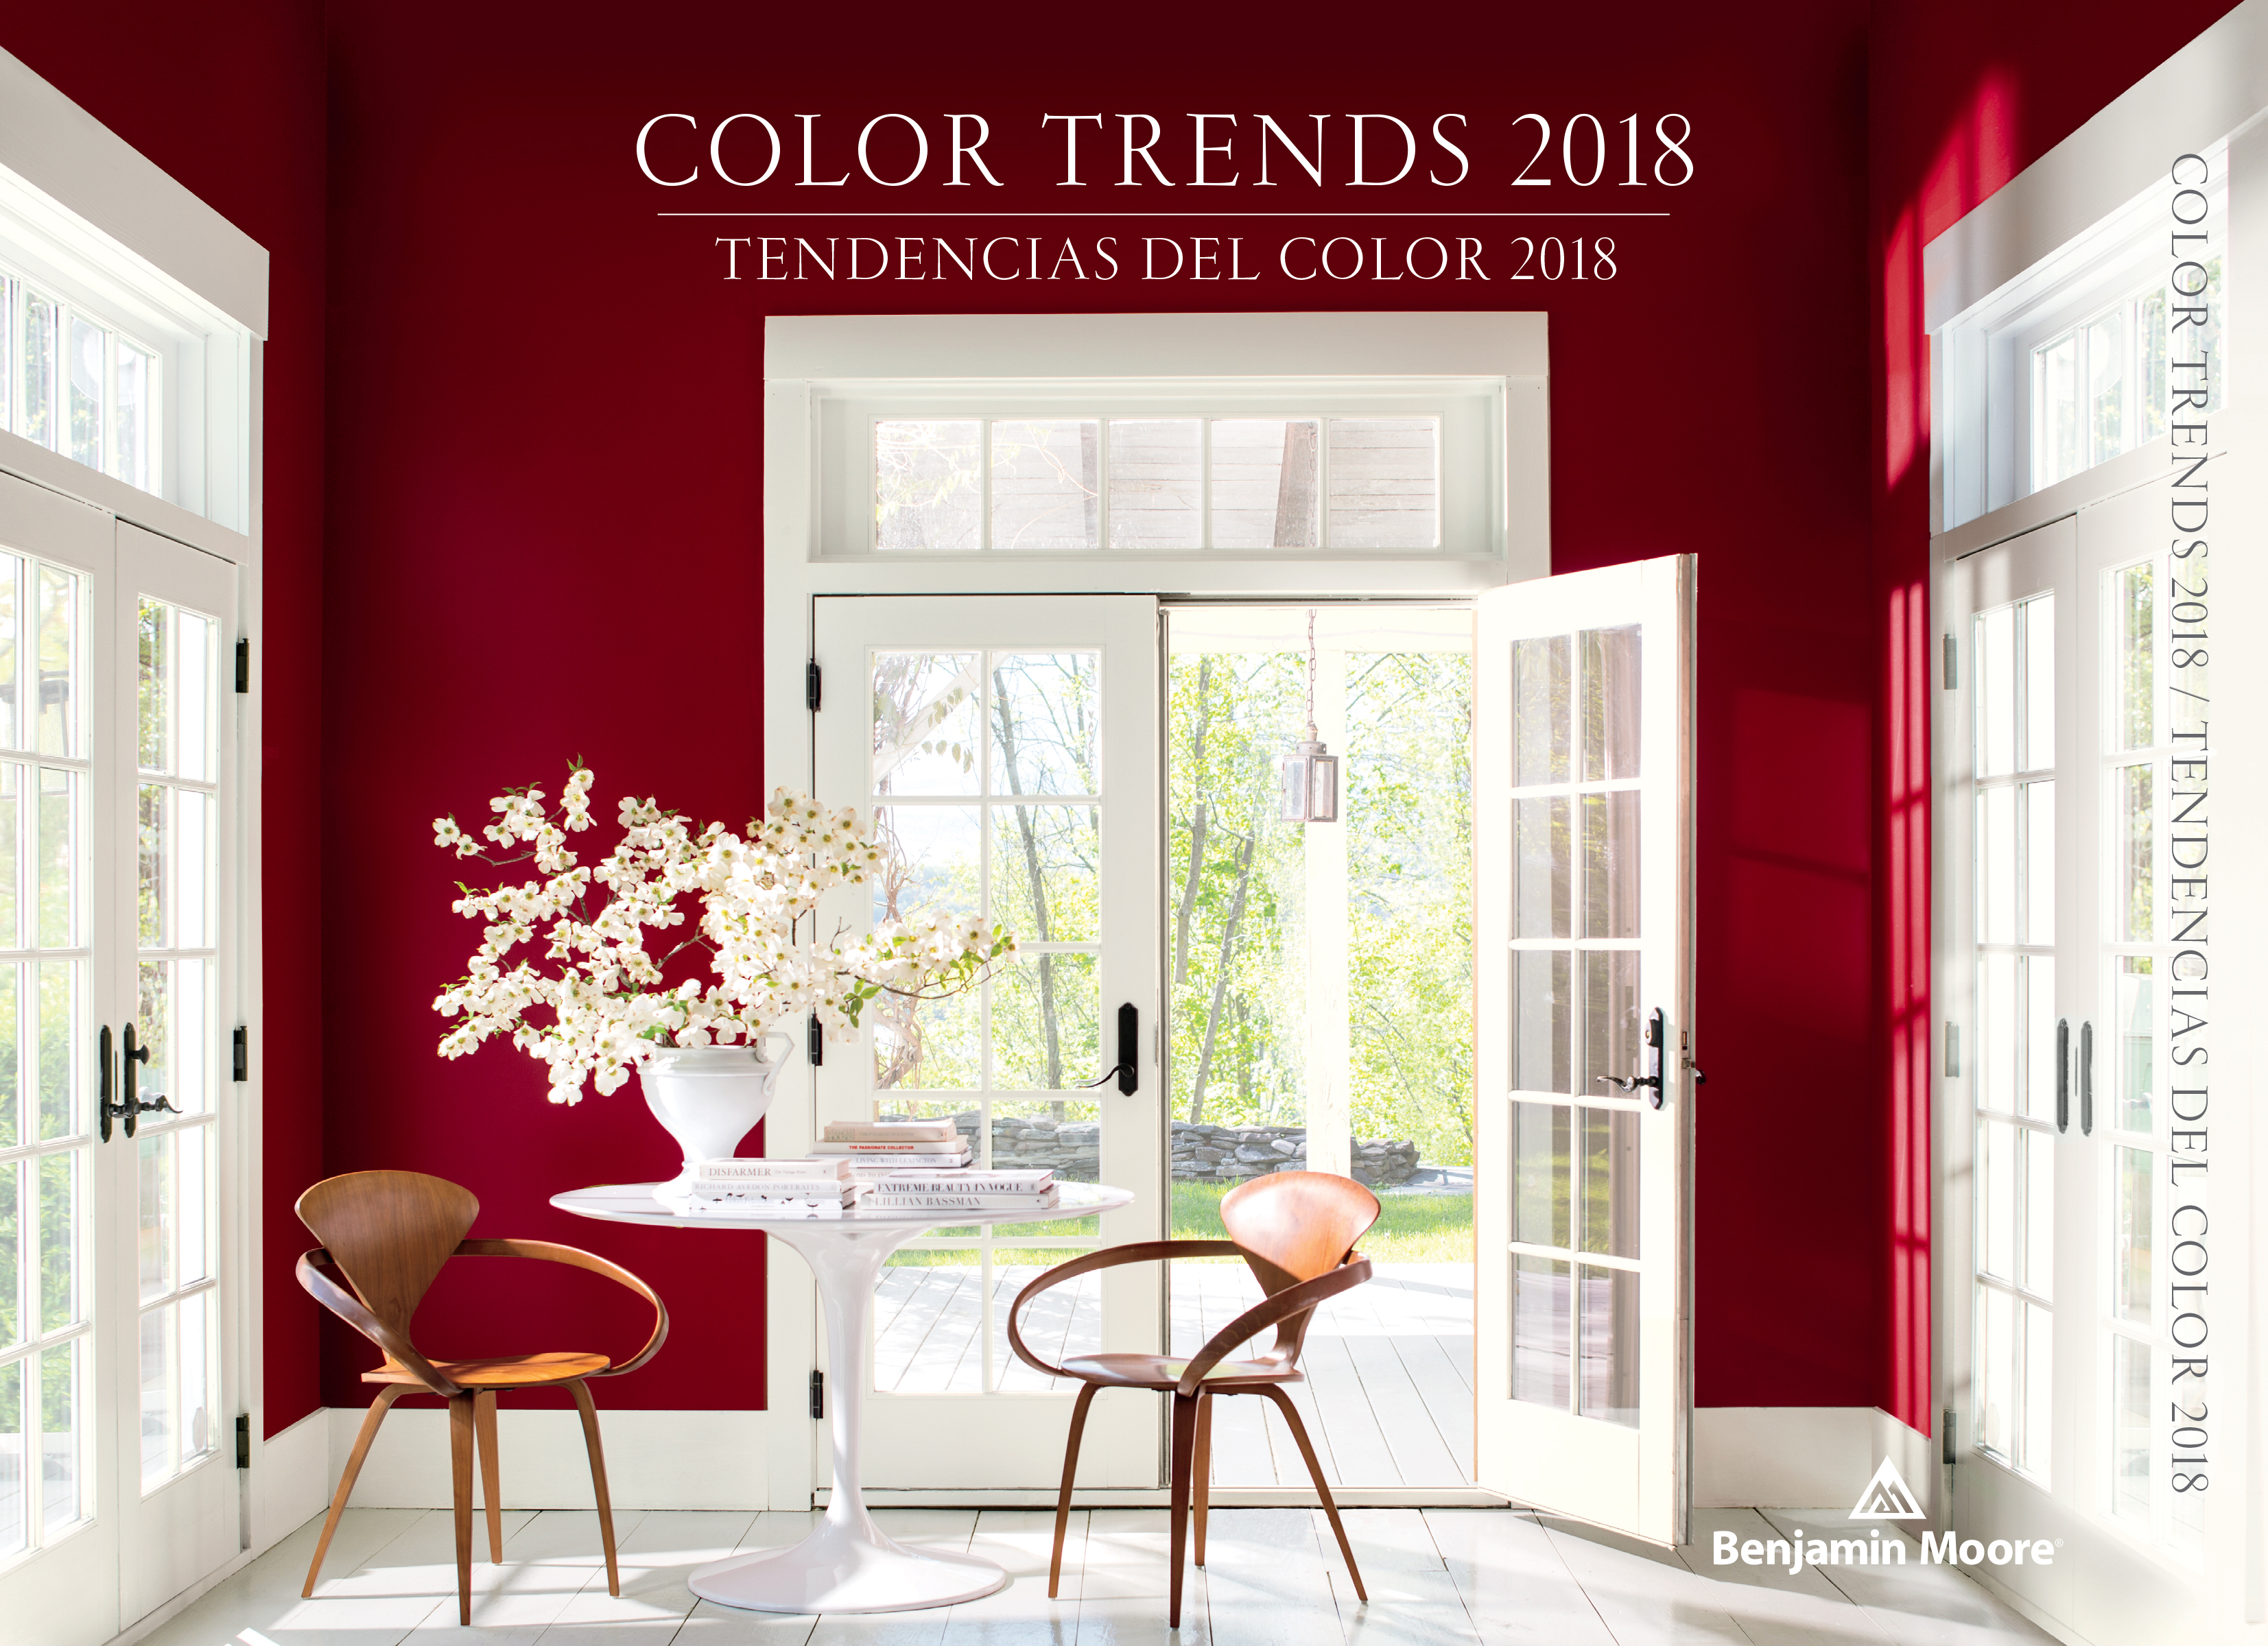 Benjamin Moore Reveals Caliente Af 290 As Its Color Of The Year 2018 Business Wire